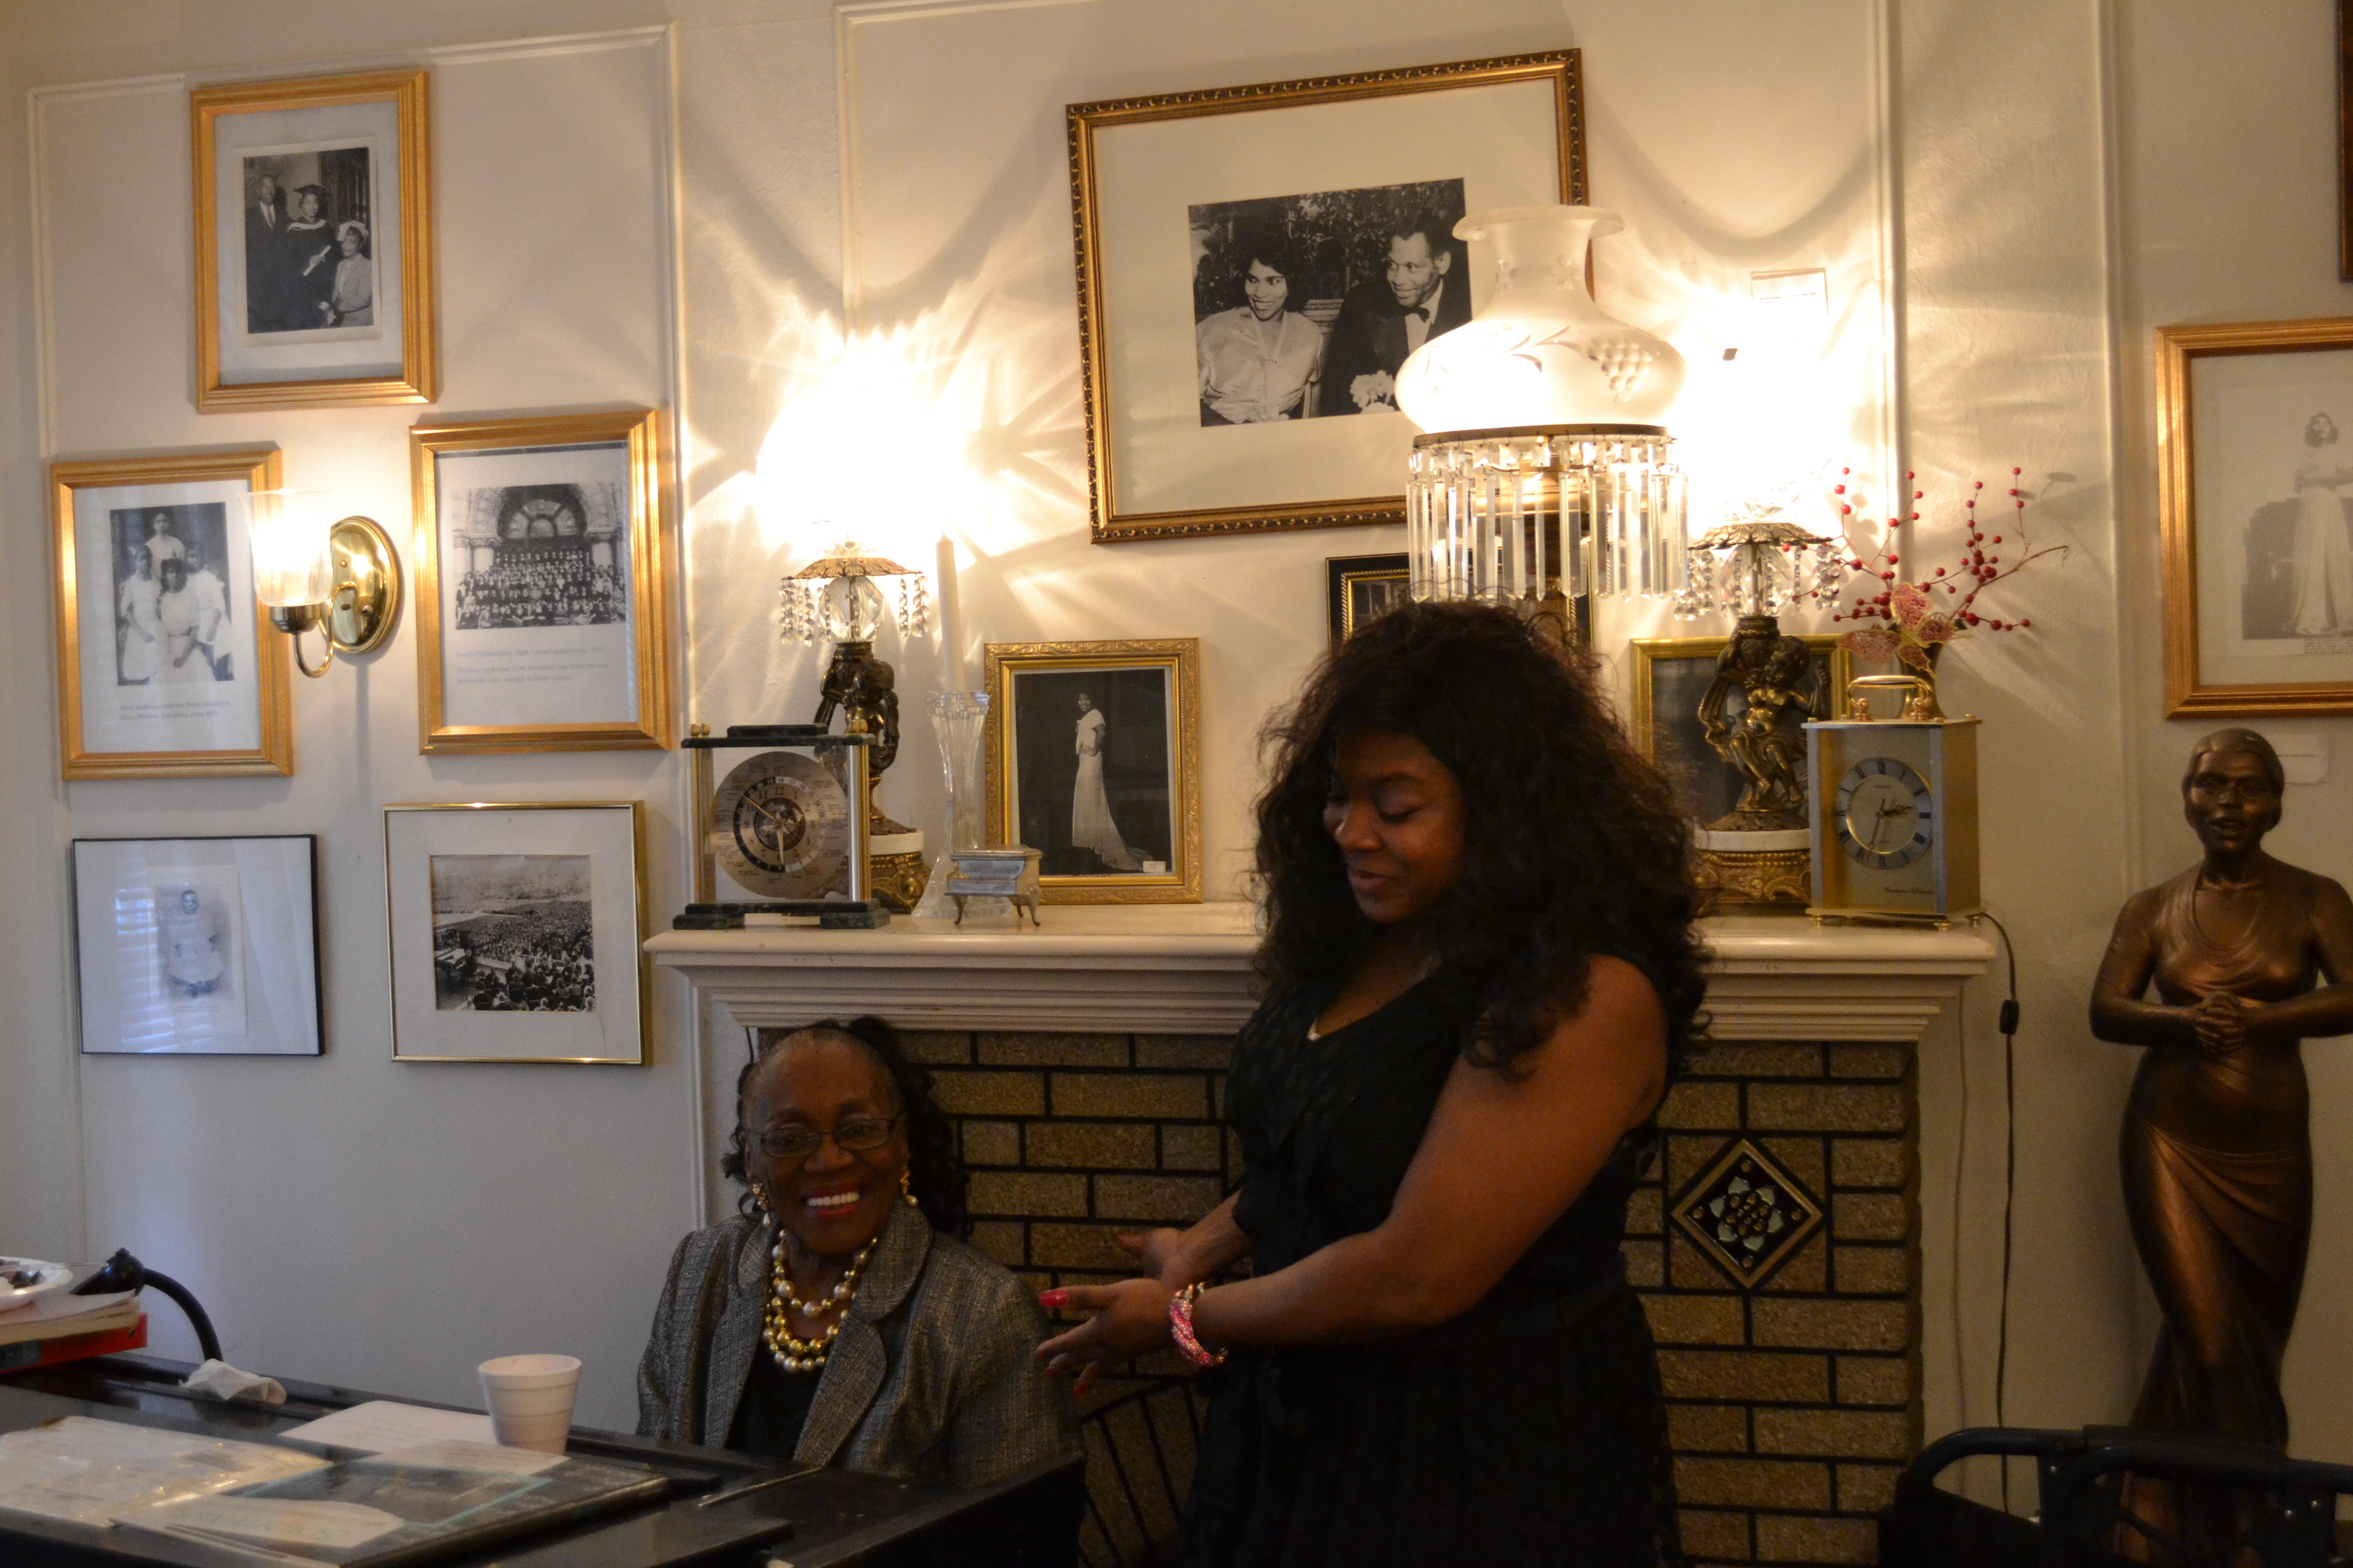 Lady Blancheburton Lyles, left, and Jillian Patricia Pirtle, right, perform some of Anderson's music